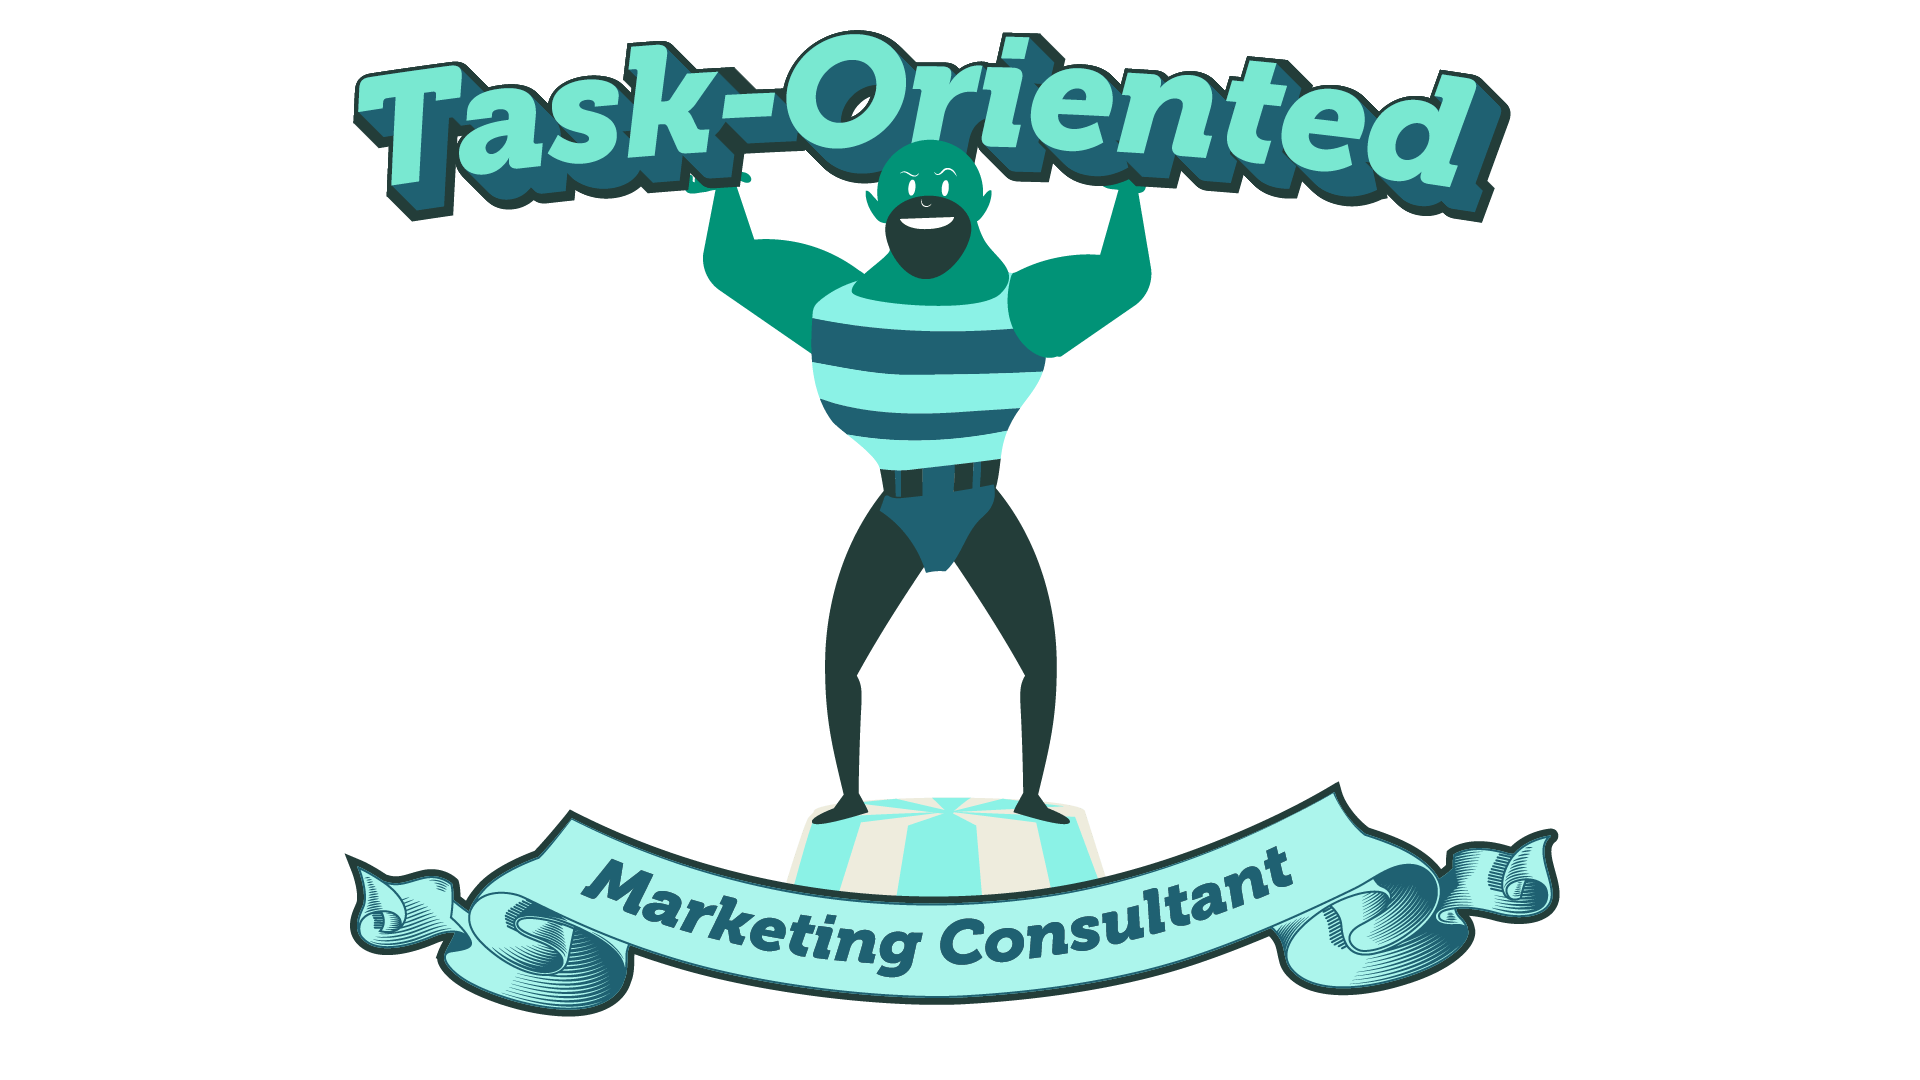 IMAGE: Task-Oriented Marketing Consultant